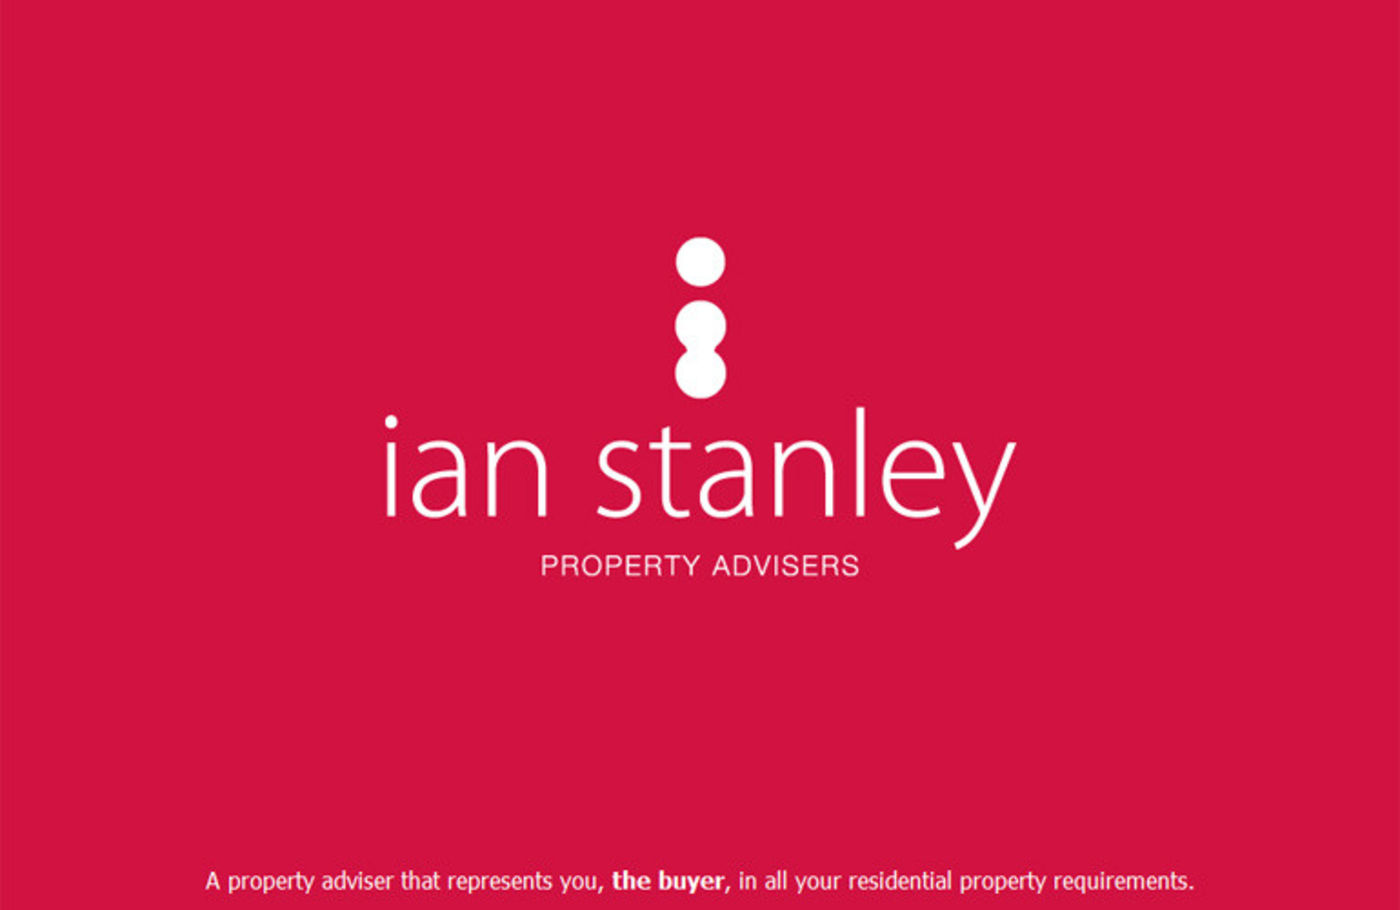 Ian Stanley Property Advisers Welcome